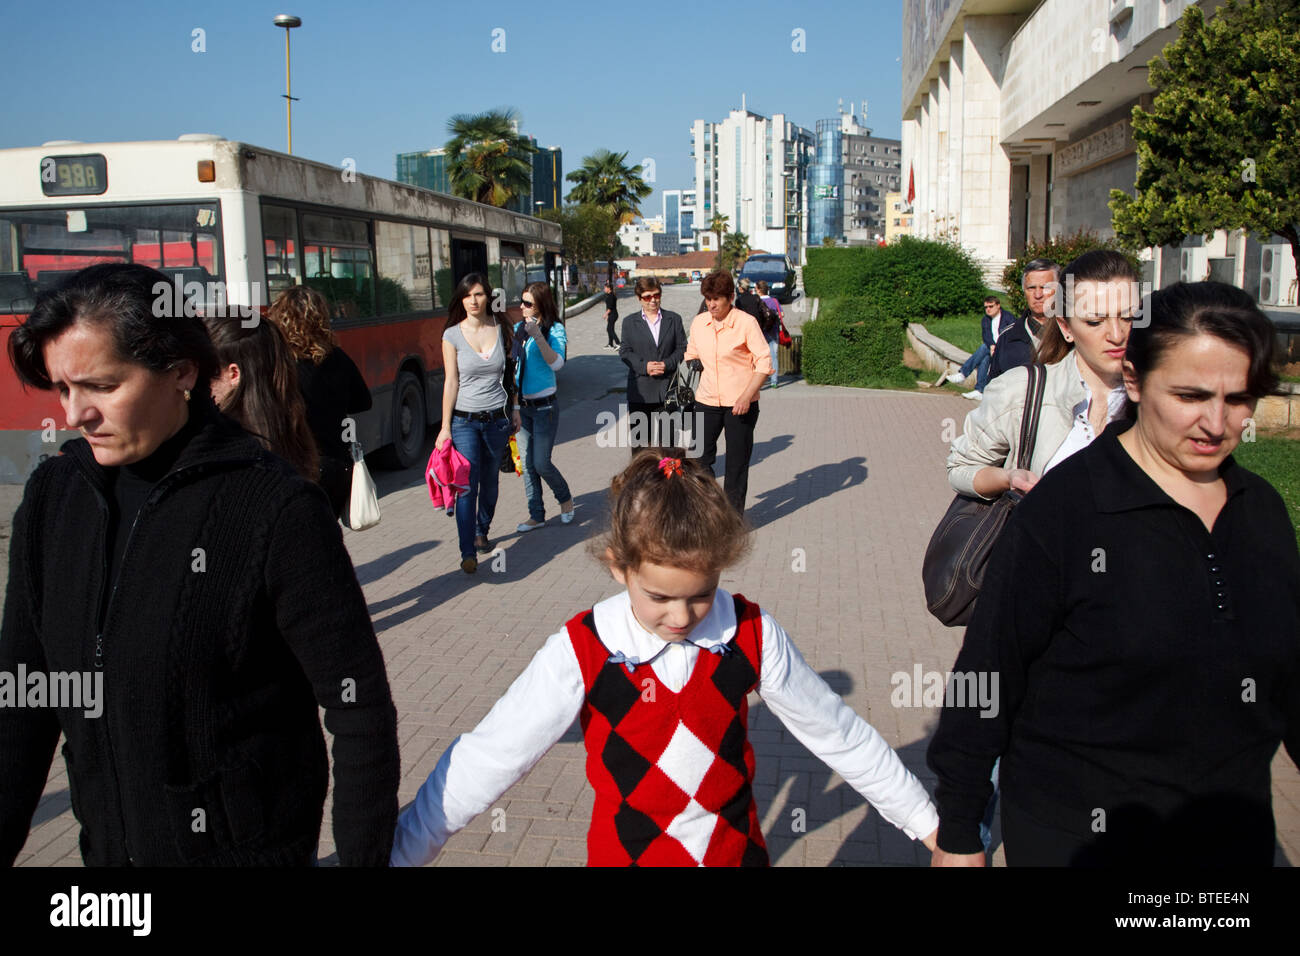 A girl goes to school in Tirana, the capital of Albania. - Stock Image